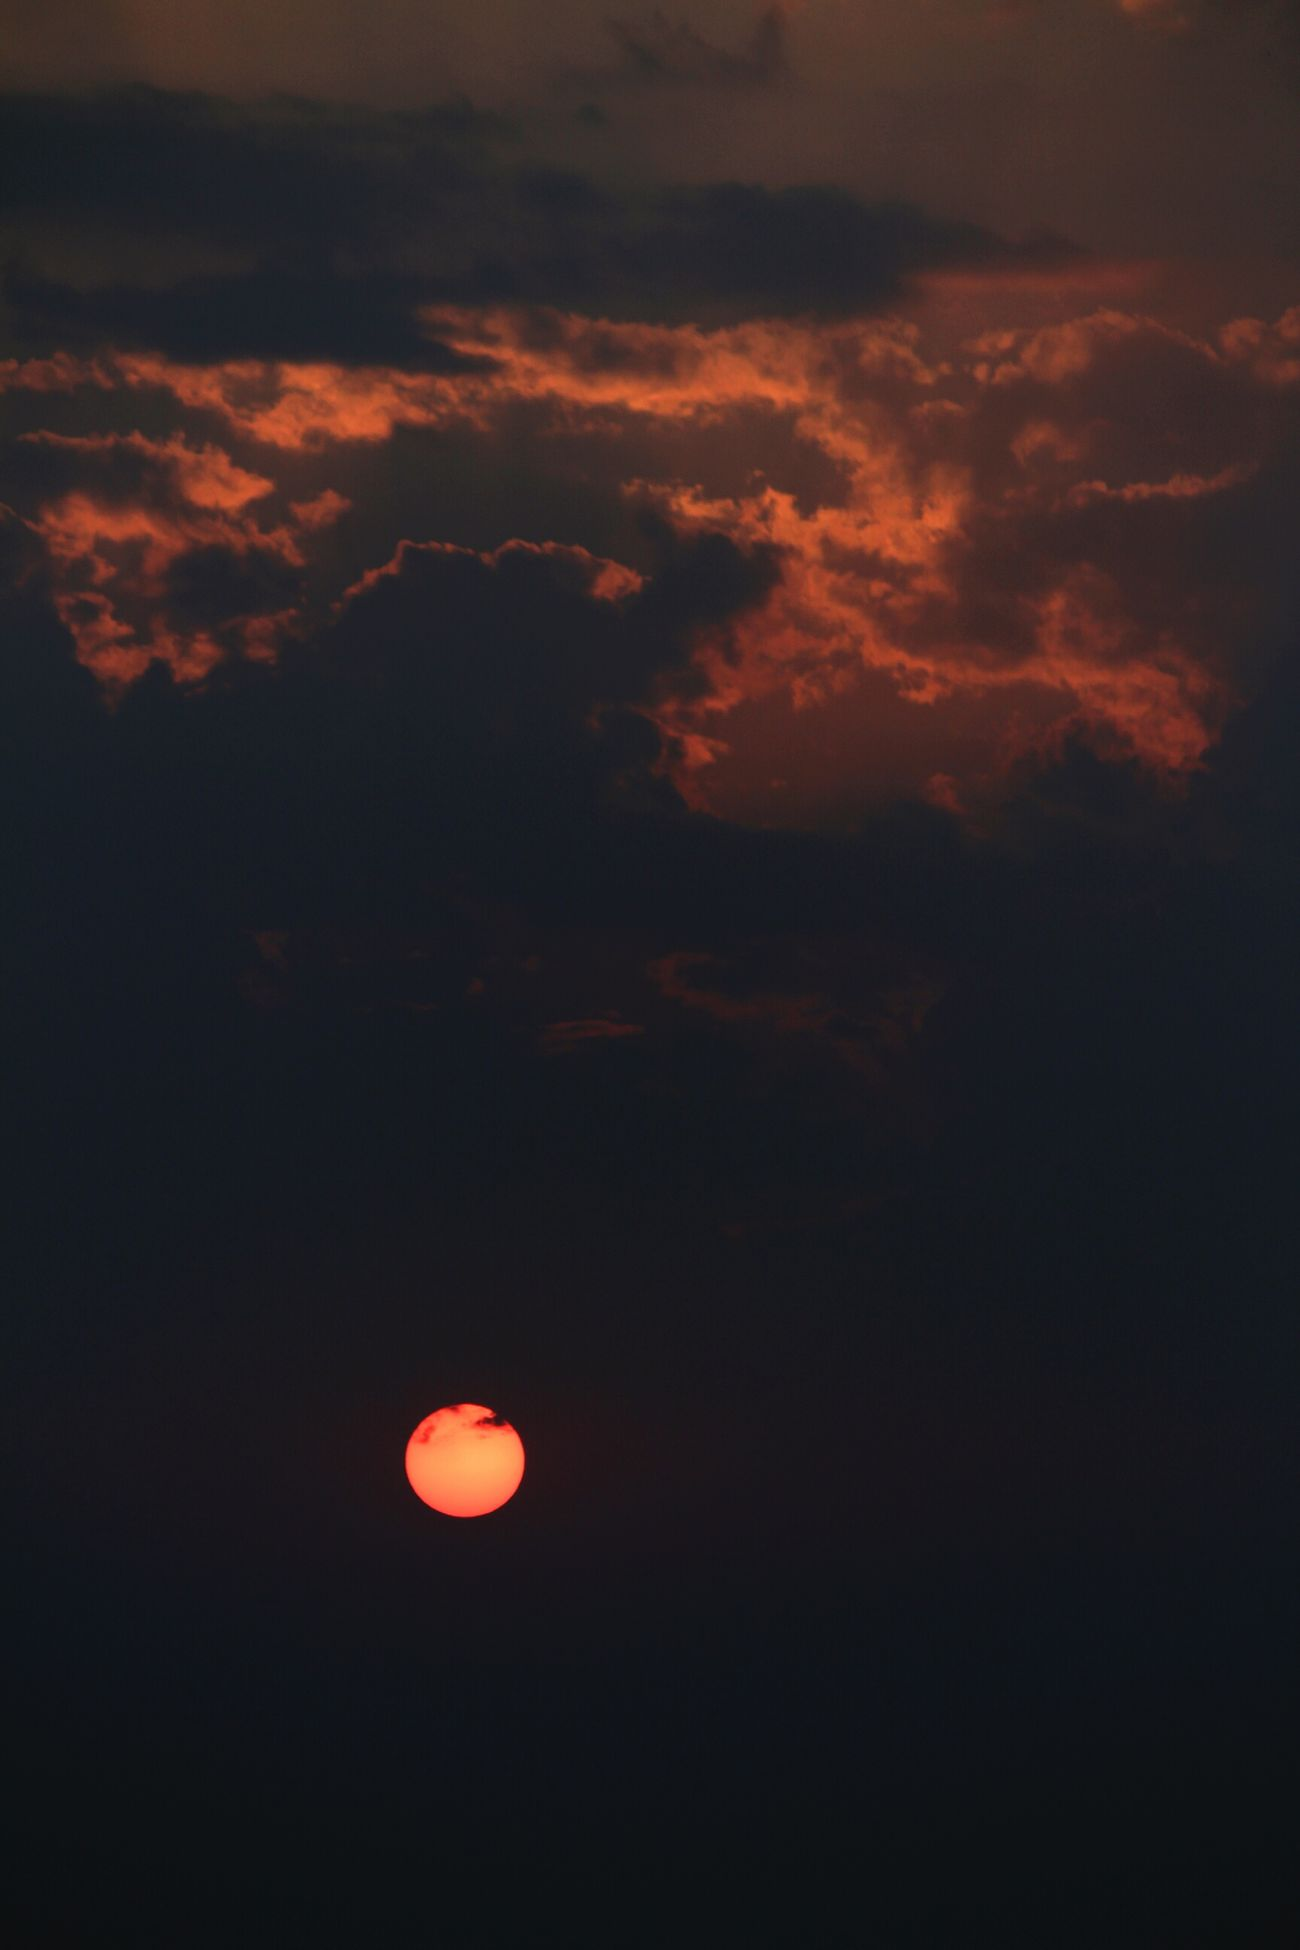 Sunrise Photography 5:30am Canon 700d Passion Photography Jaipur India